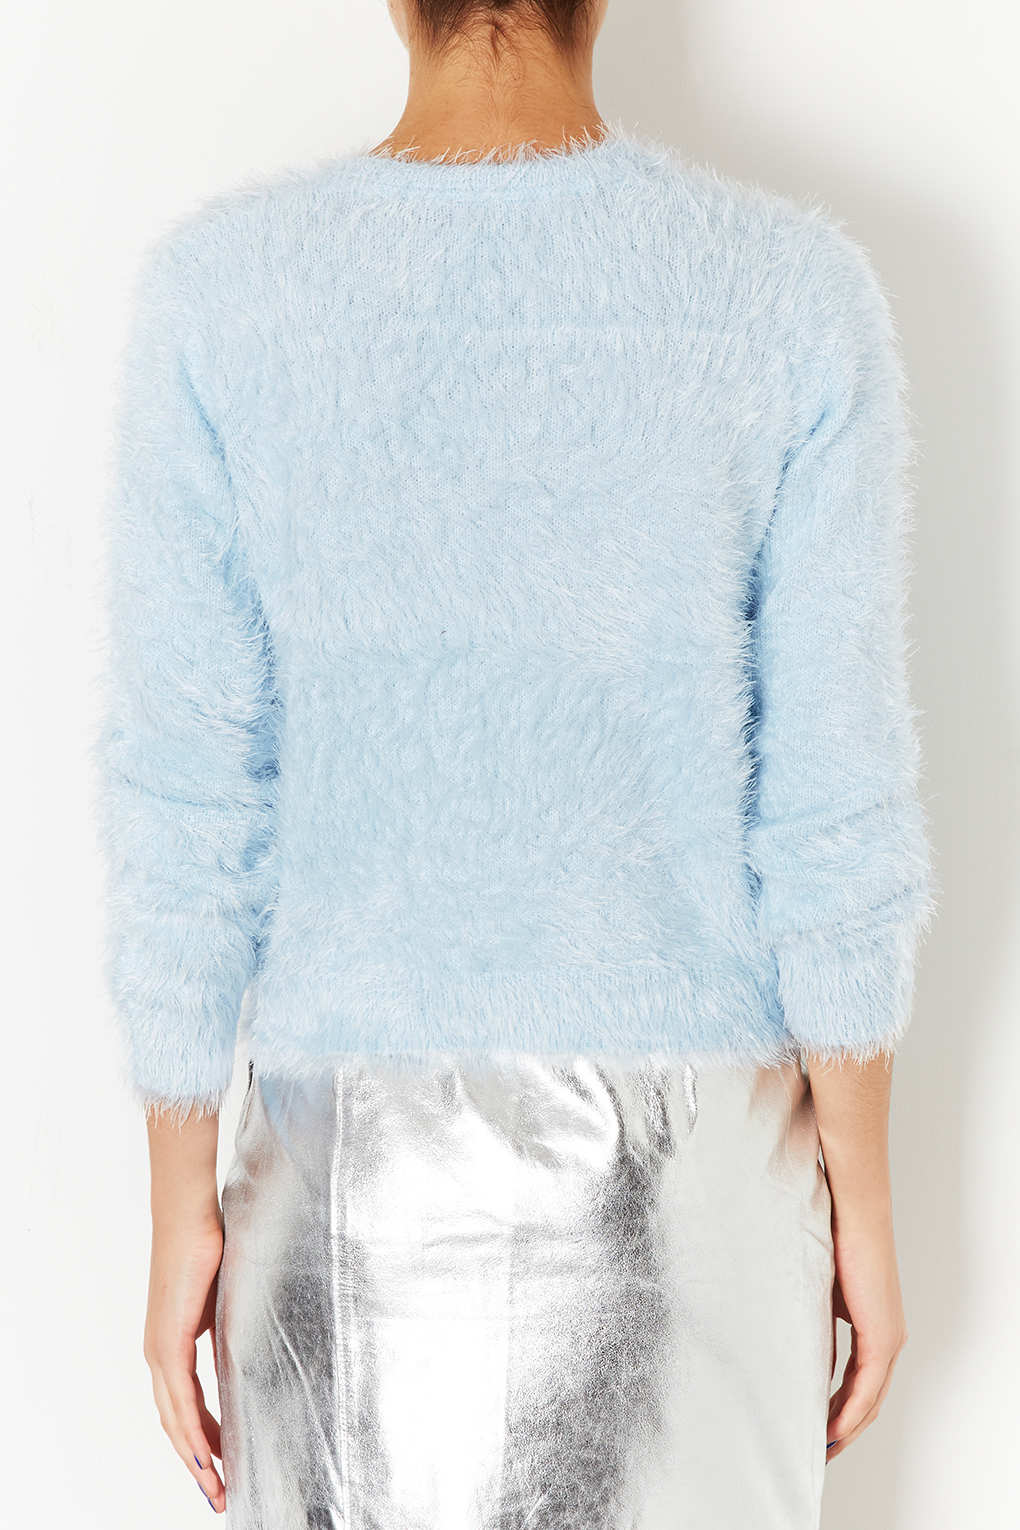 Lyst - Topshop Knitted Fluffy Crew Jumper in Blue